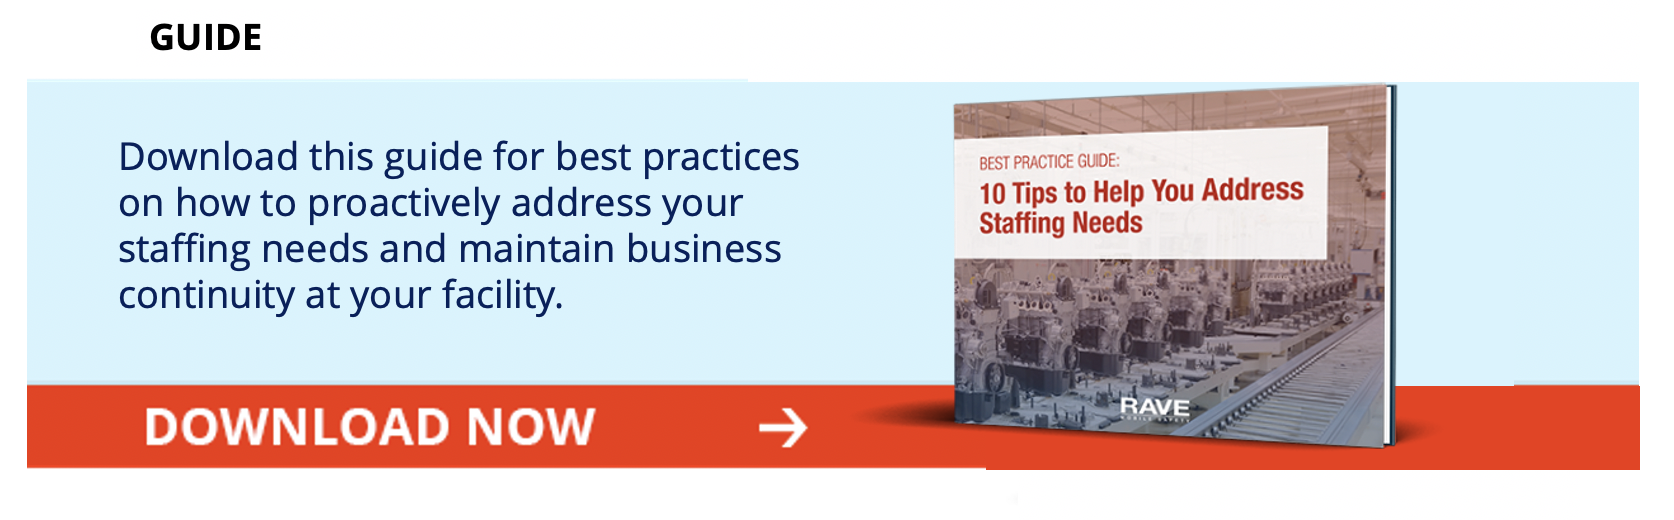 Addressing Staffing Needs With Polling Guide